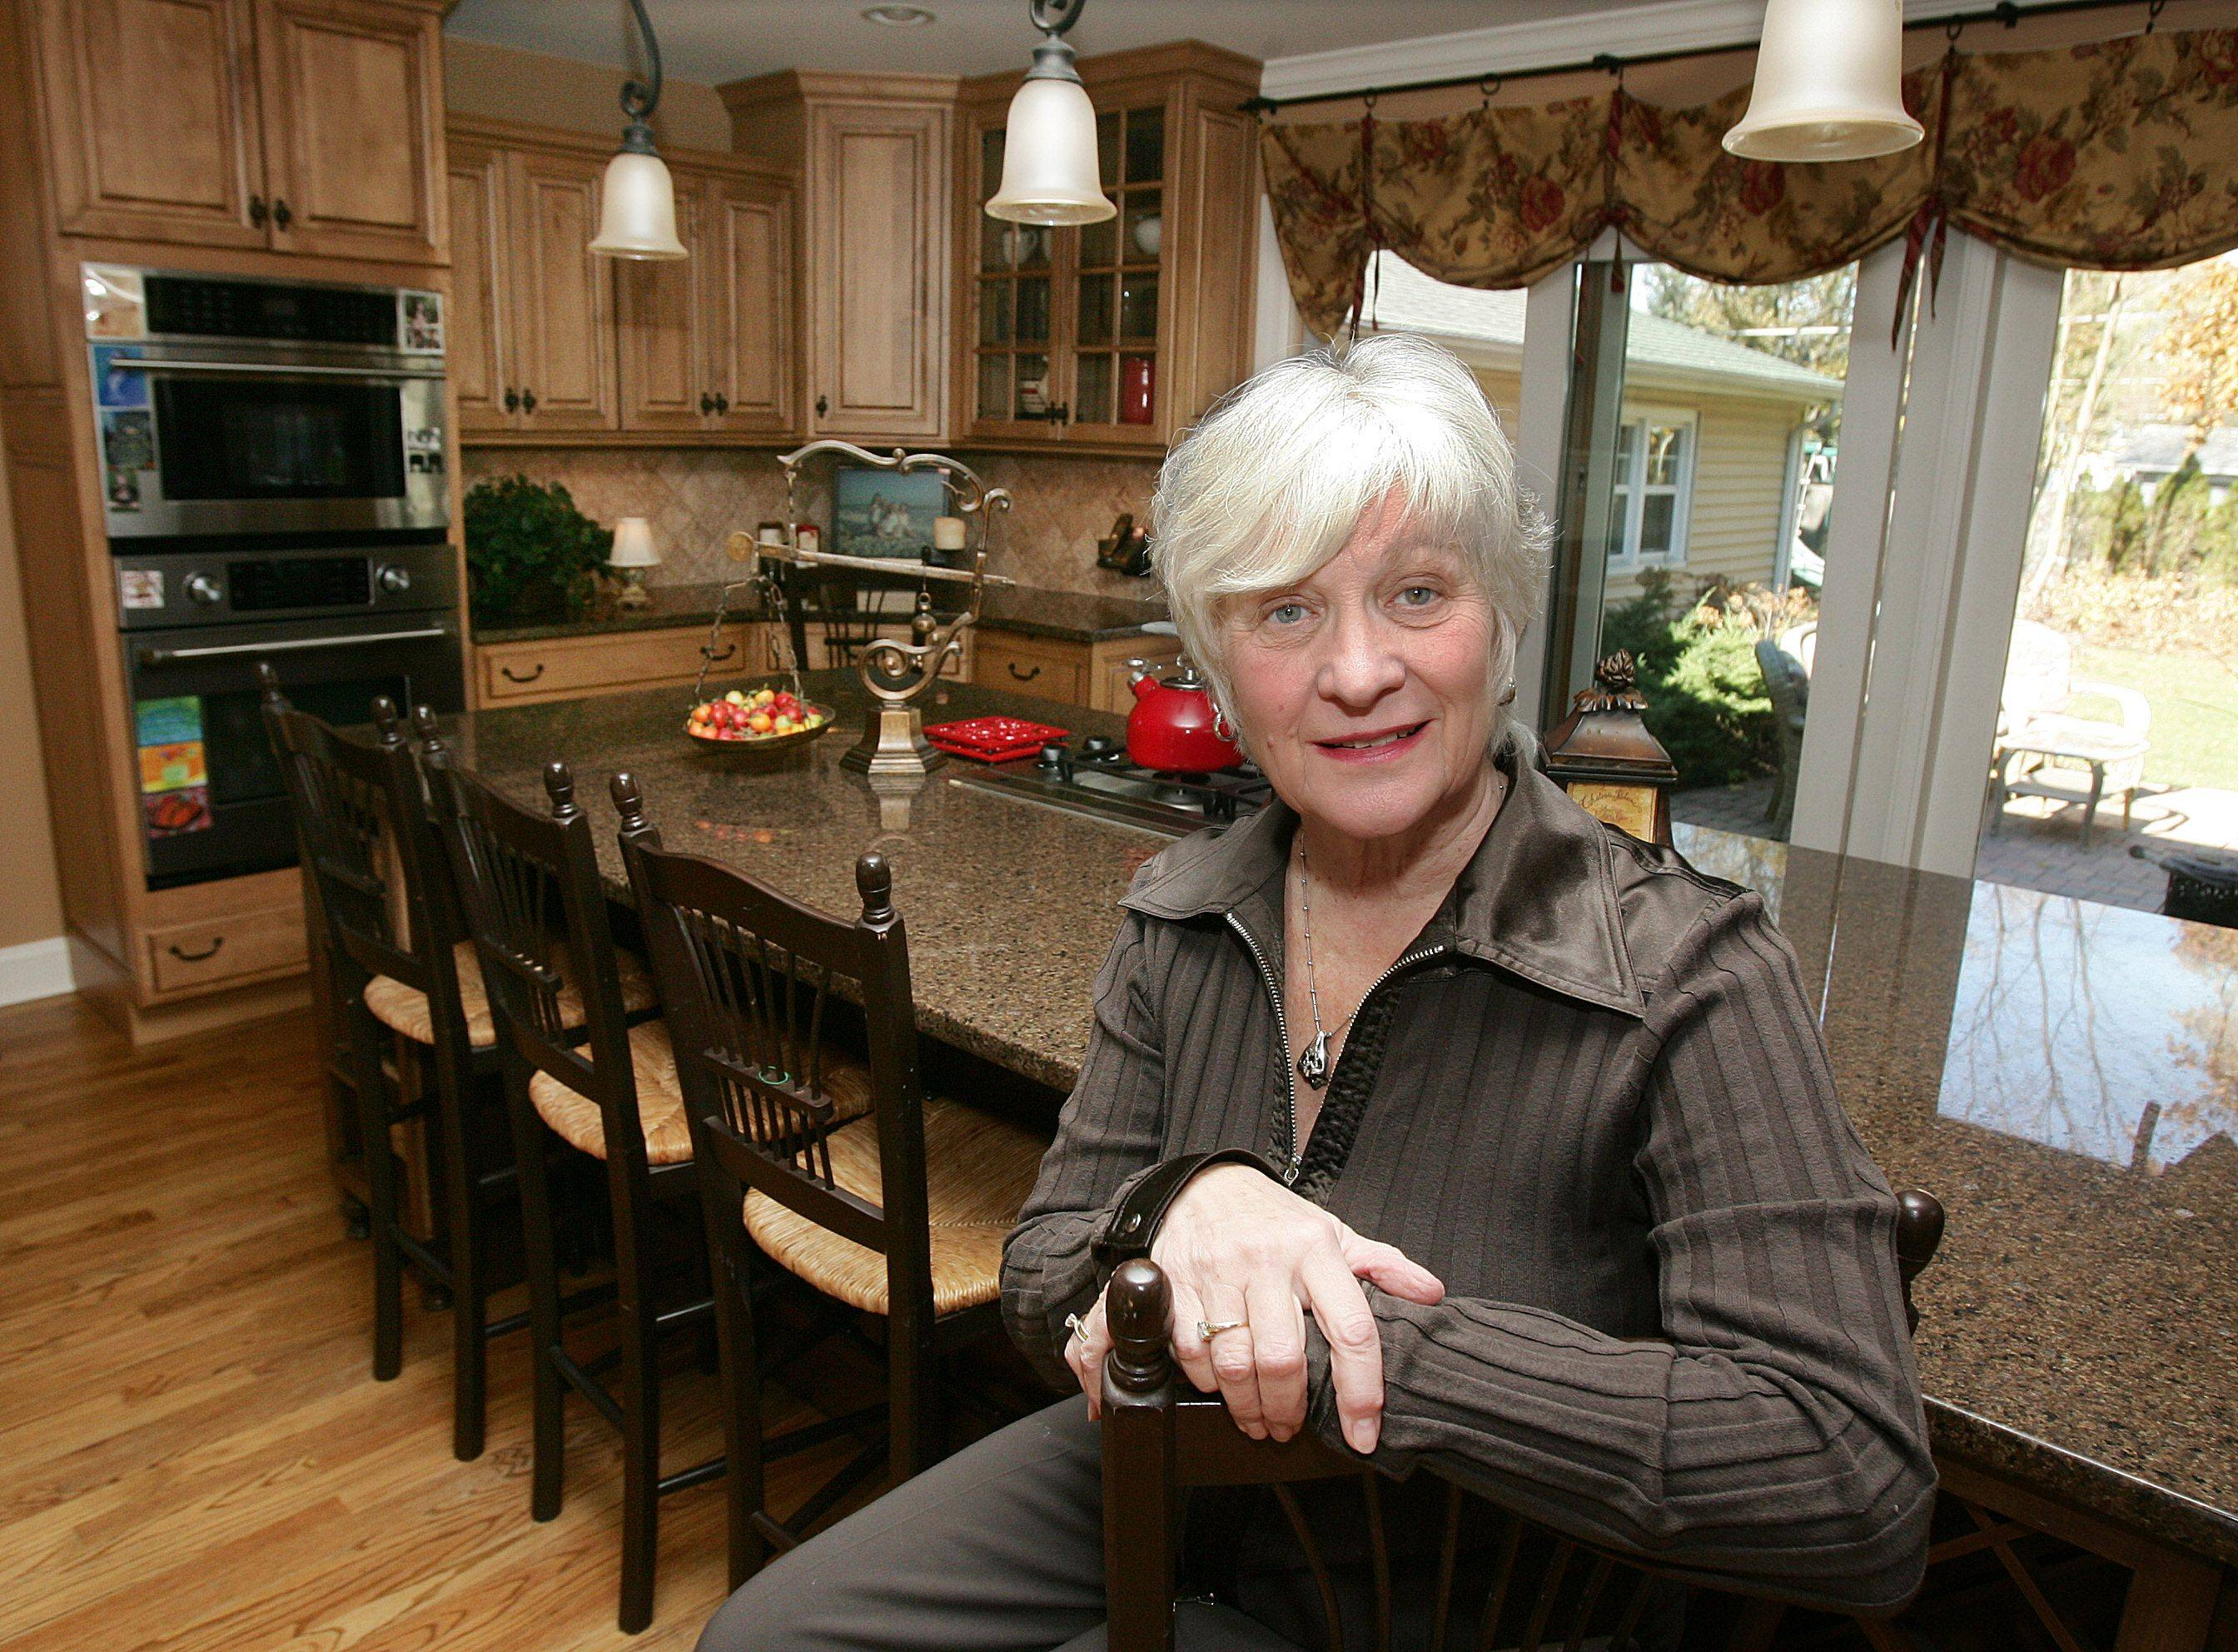 The kitchen of Libertyville home decorated by Pam Rawles of Designs In Context.